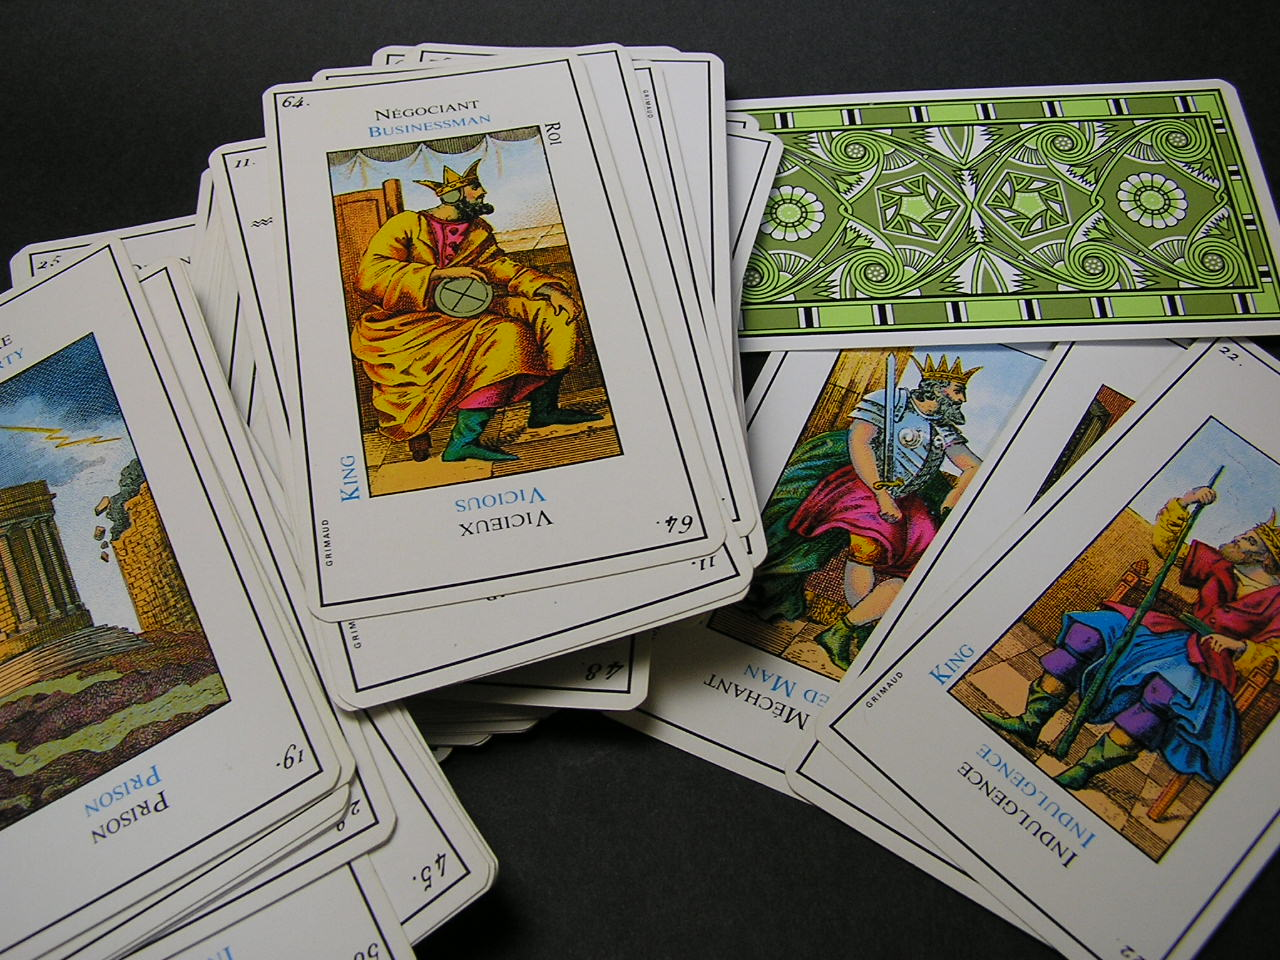 Worksheet Online Free Reading how to give an expert tarot reading online or offline free